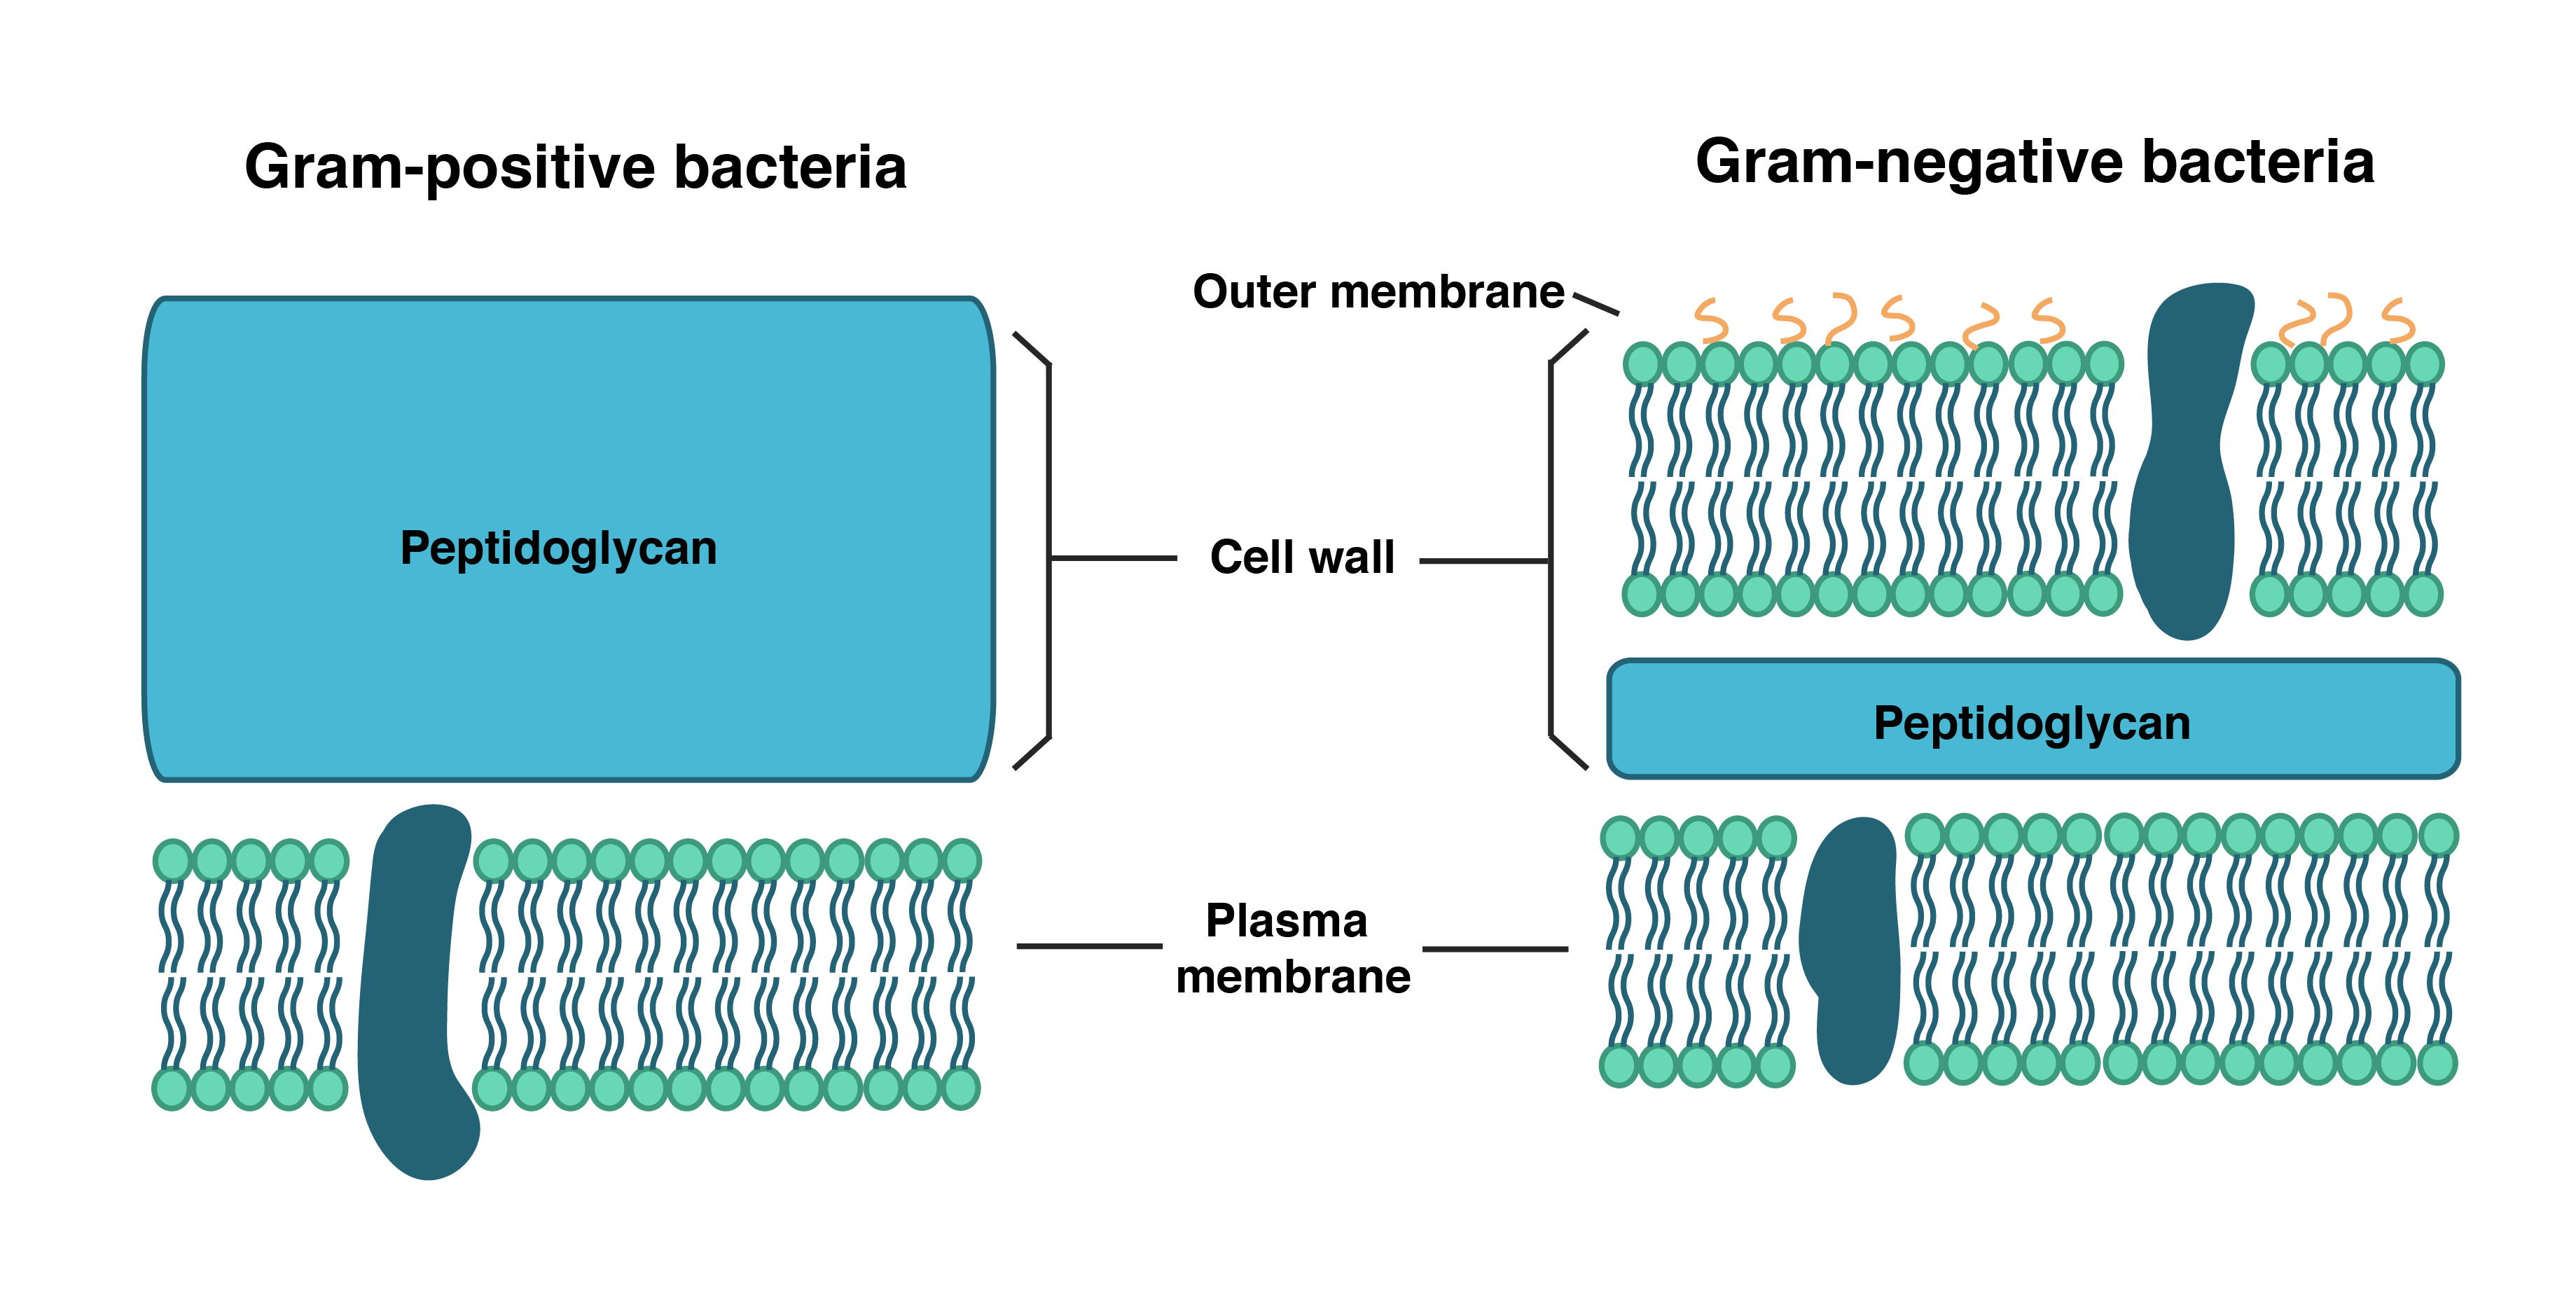 Prokaryote Structure Article Khan Academy Cell Model With Labels Animal Unlabeled Diagram Labeled Gram Positive Bacteria Have An Inner Plasma Membrane And A Thick Wall Composed Of